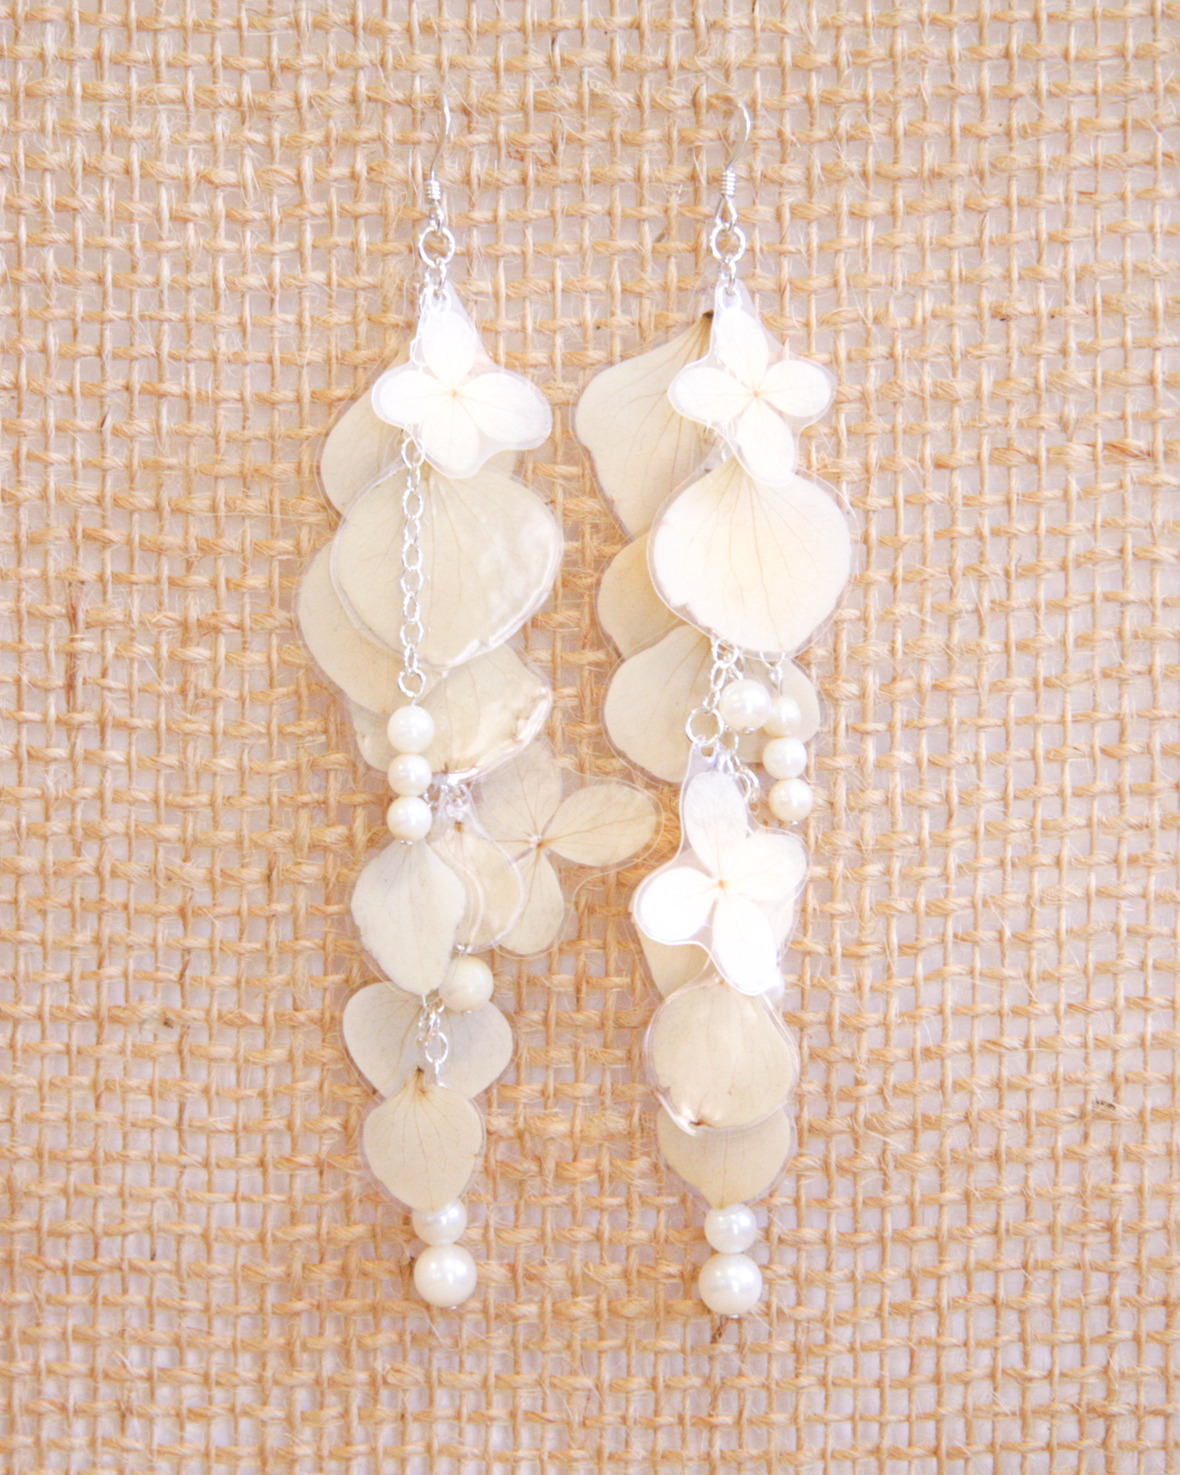 IMPRESSED by nature 3 - hydrangea pearl earrings - matisse